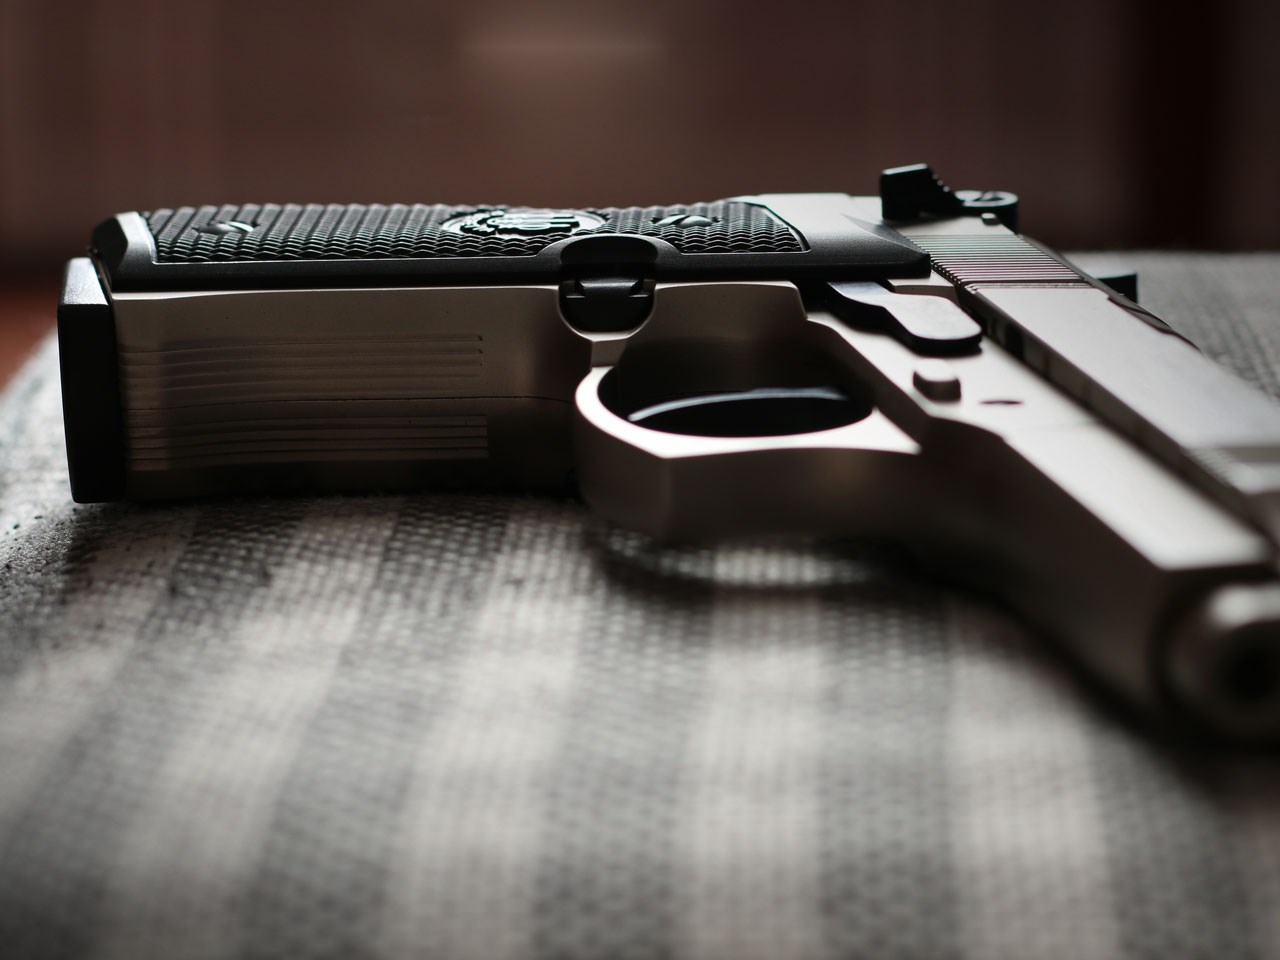 North Carolina county approves Second Amendment resolution